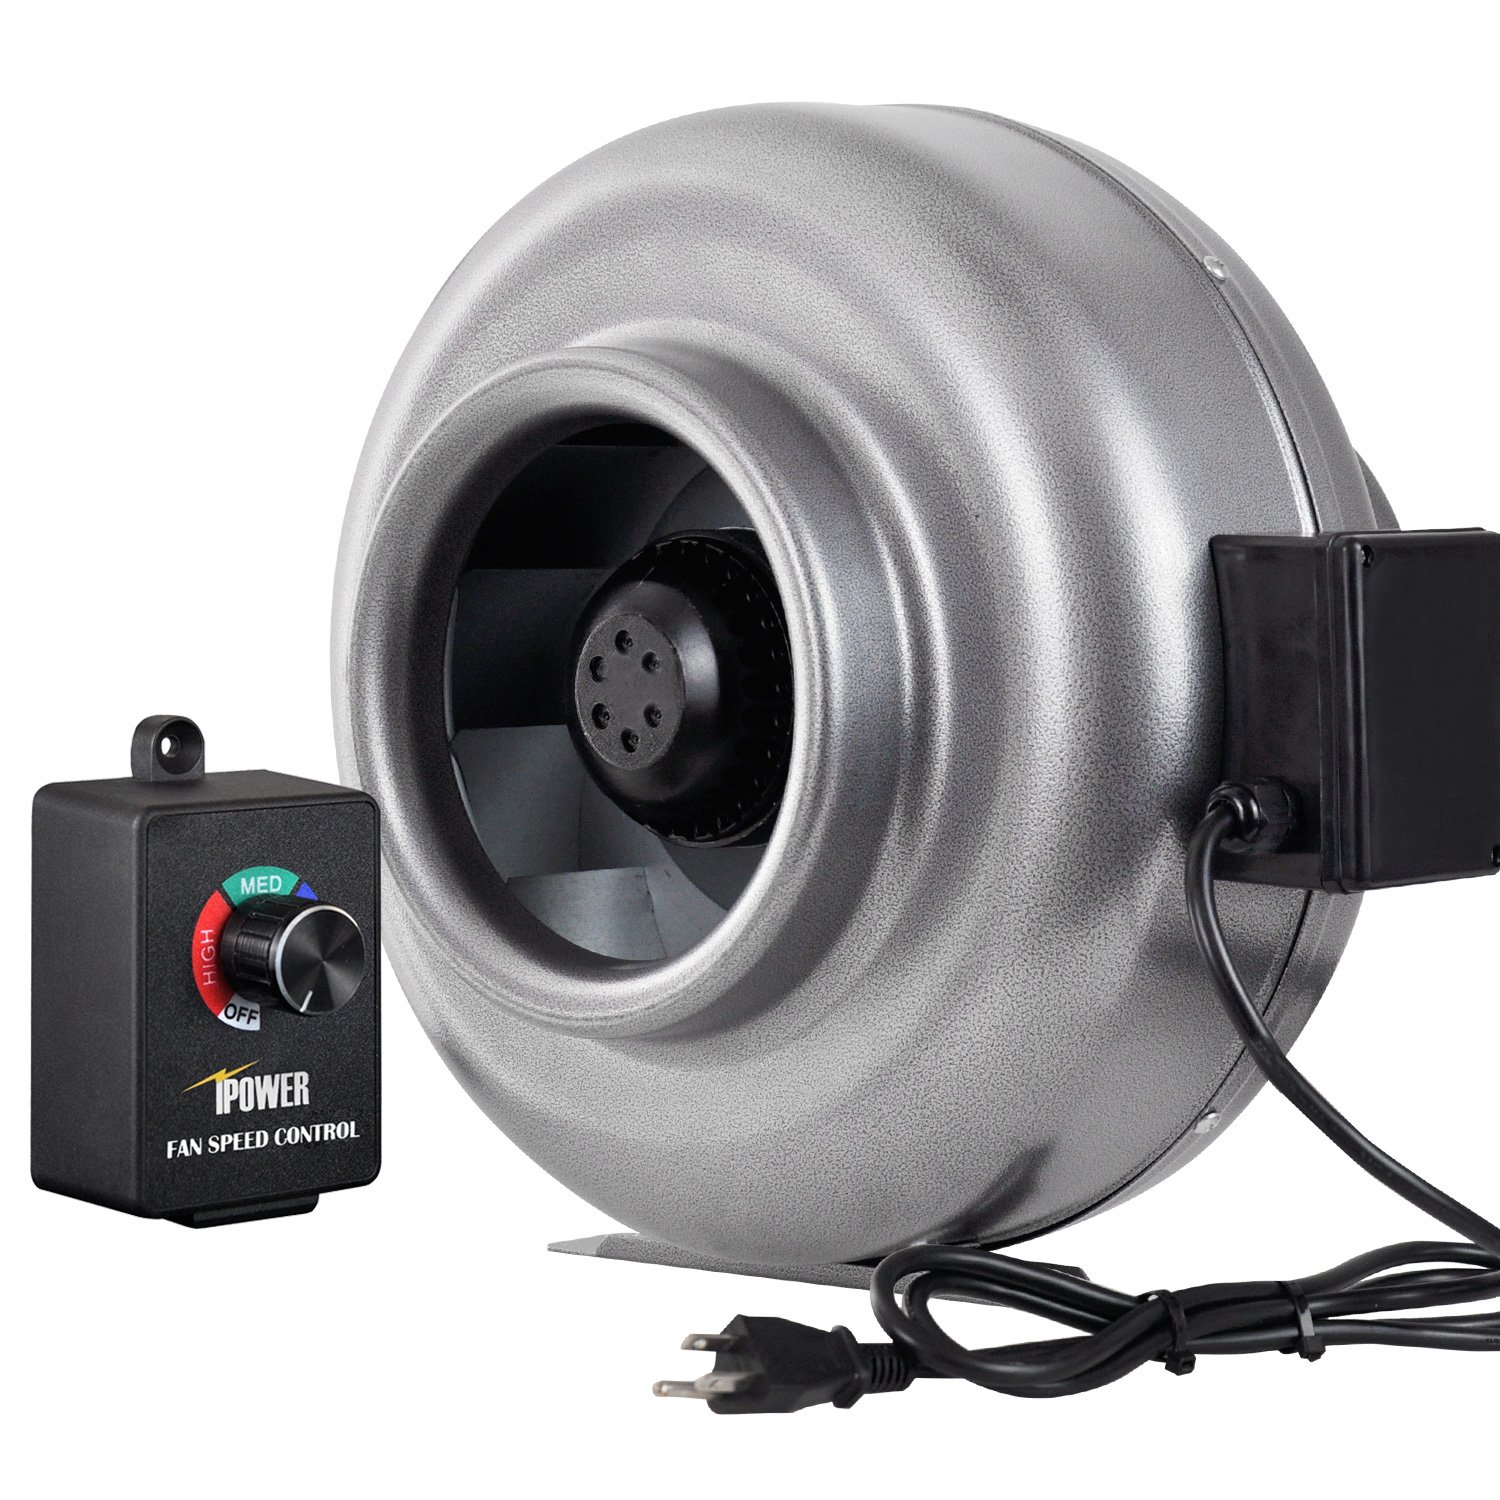 iPower 8 Inch 750 CFM Duct Inline Fan HVAC Exhaust Blower with Variable Speed Controller by iPower